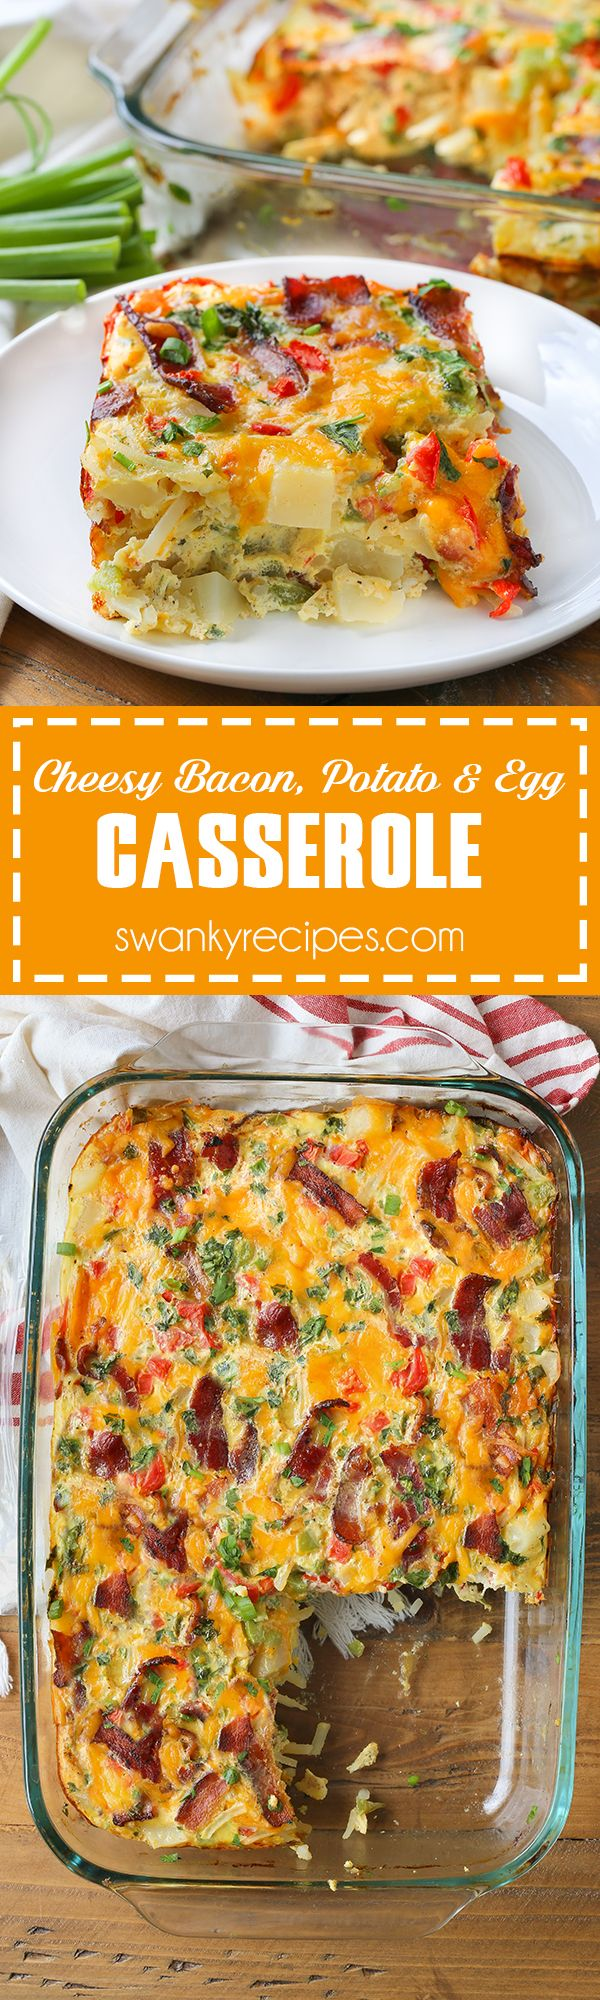 Meatless easy breakfast casserole recipes